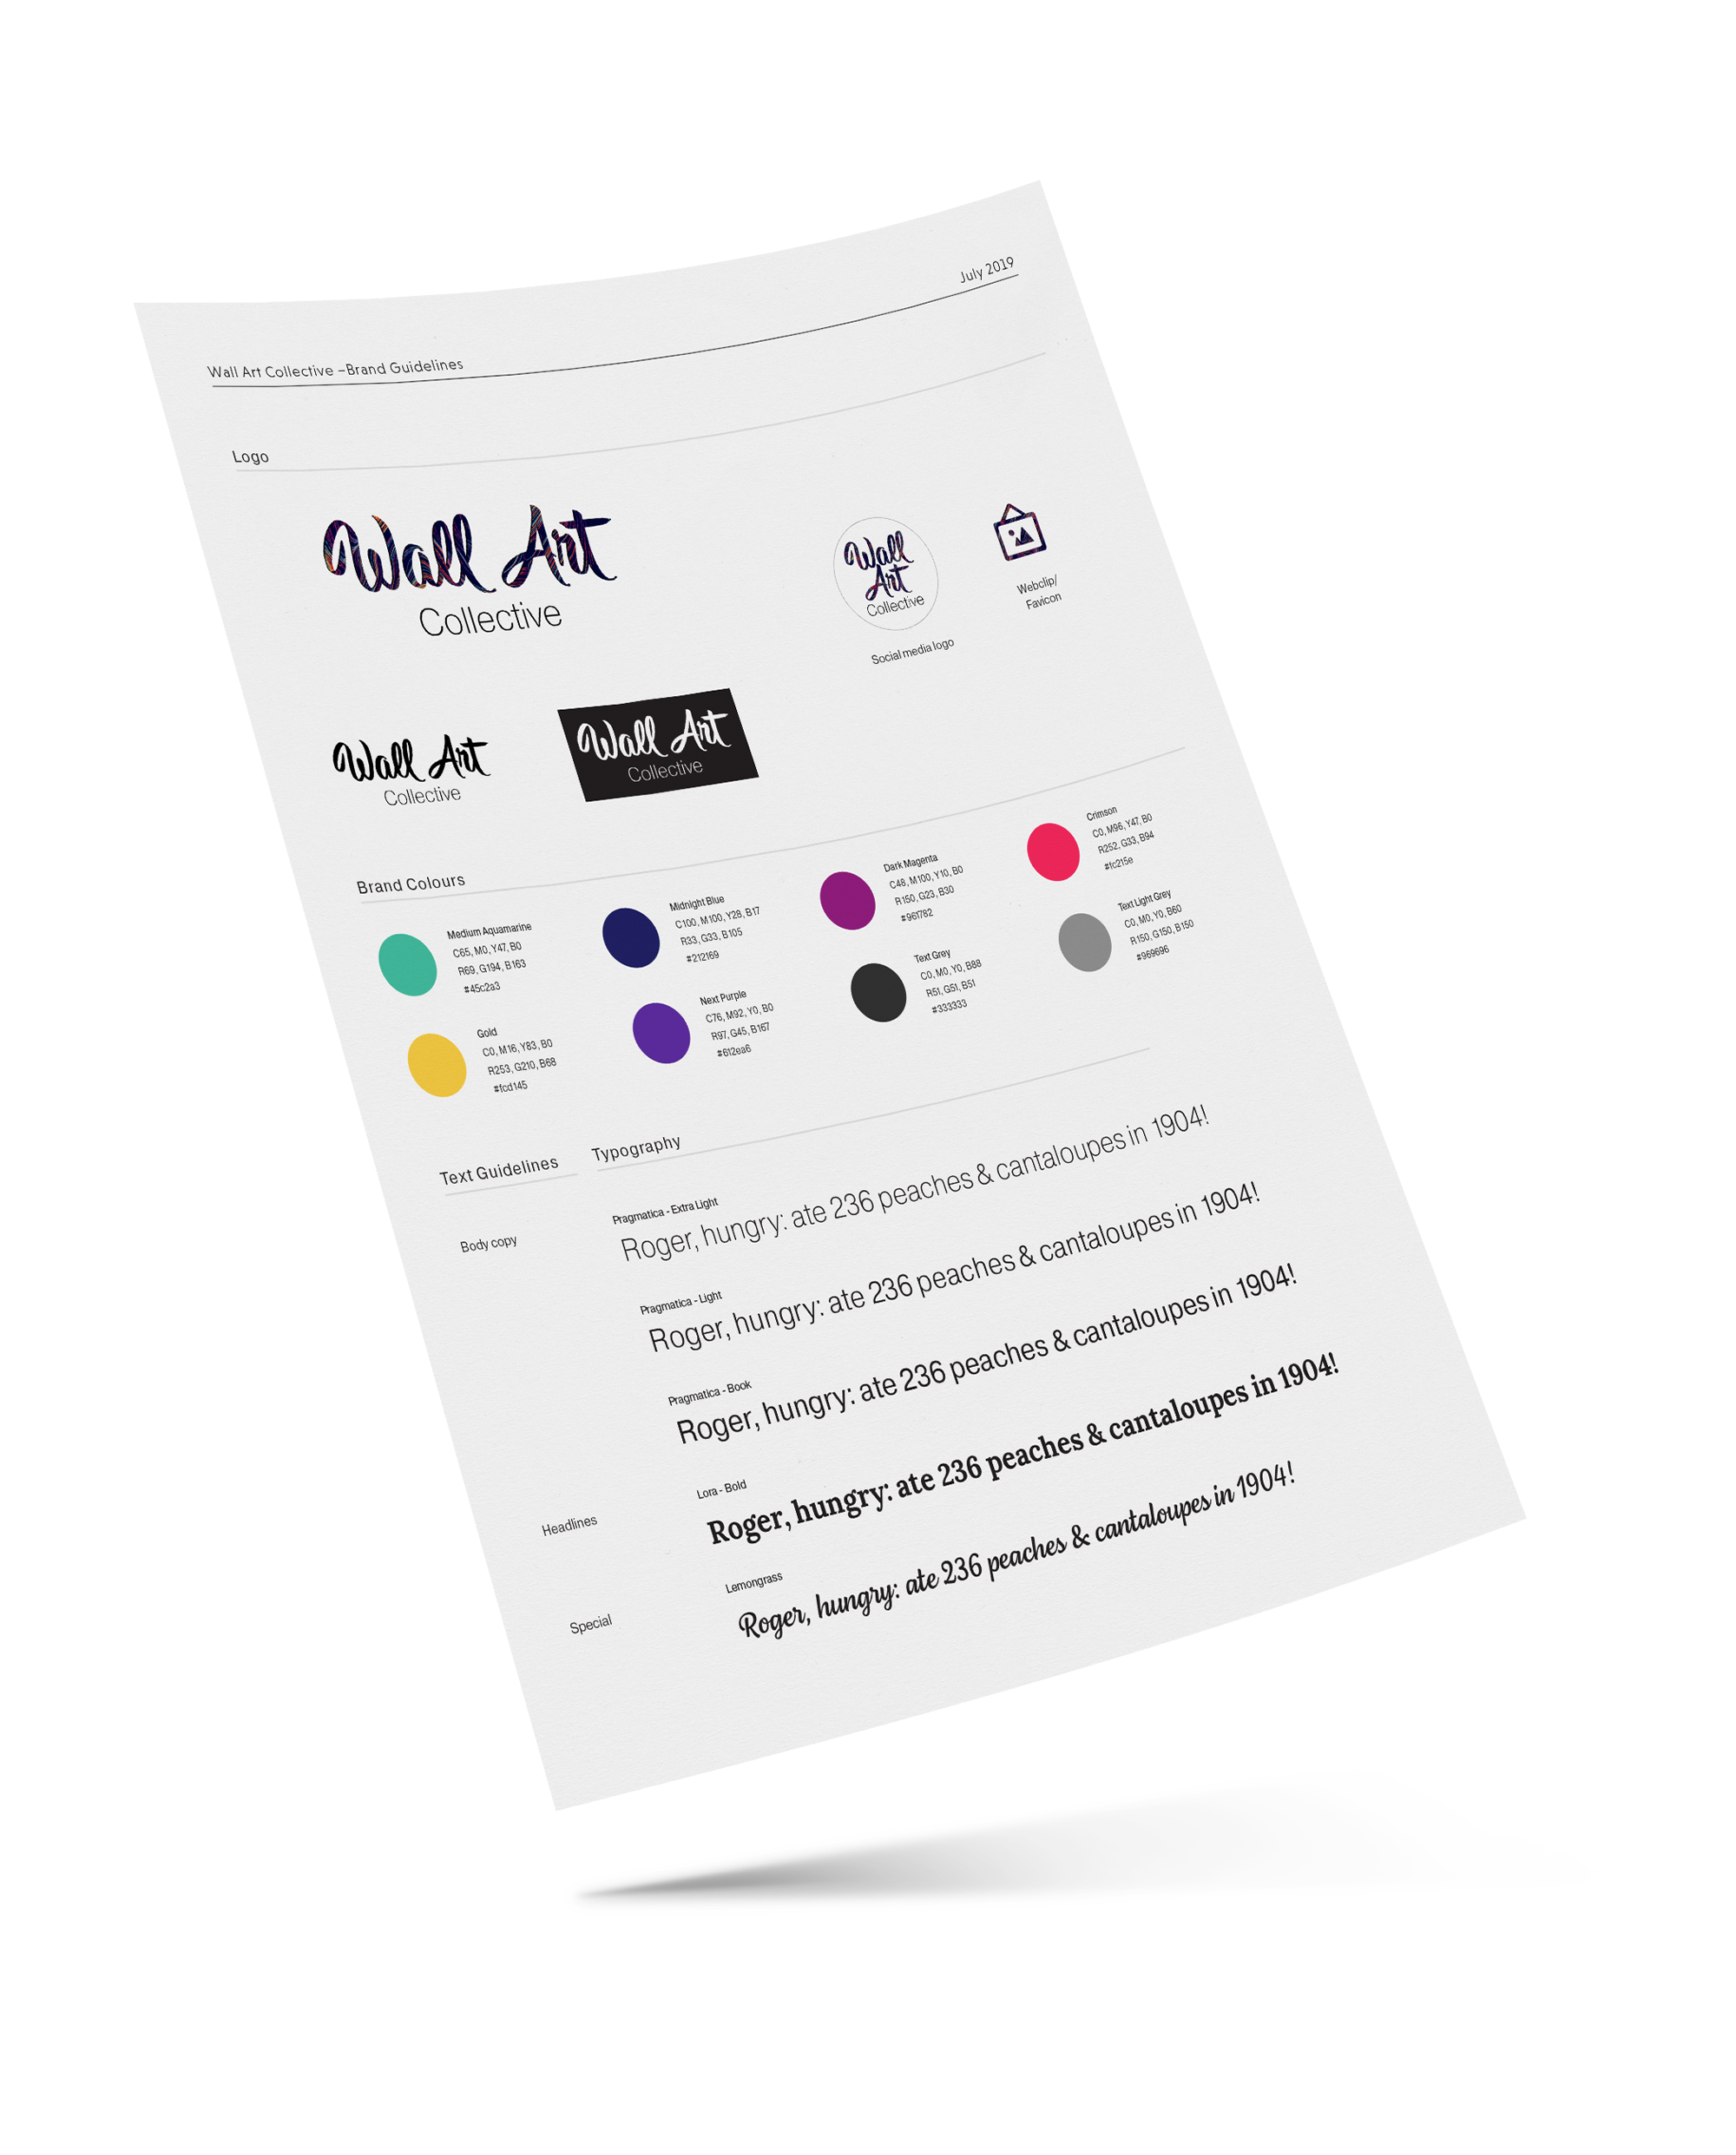 Example image of brand guidelines for Wall Art Collective.